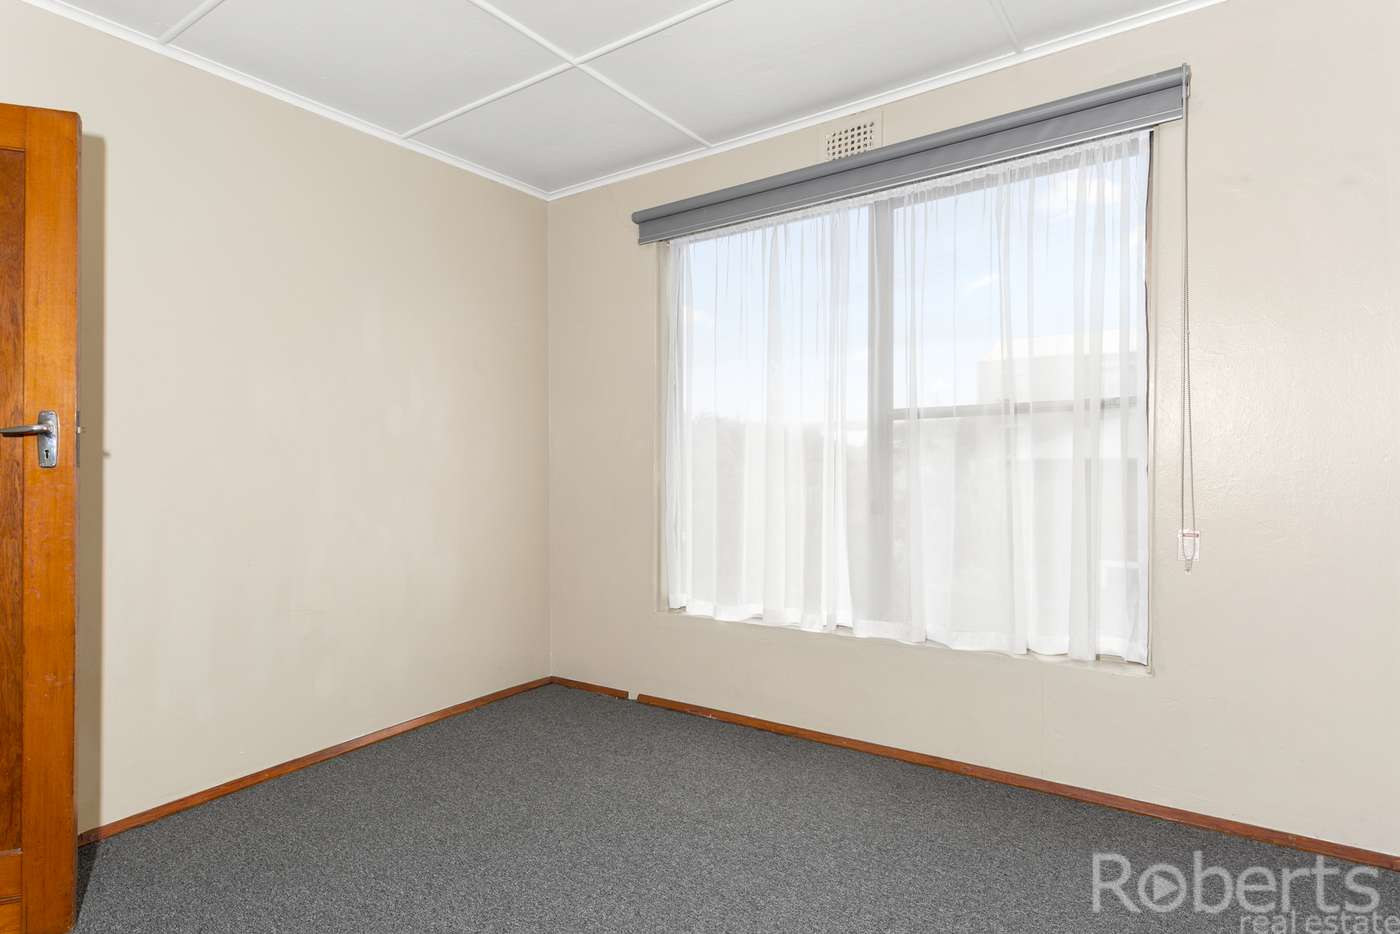 Seventh view of Homely unit listing, 6/21-23 Amy Road, Newstead TAS 7250